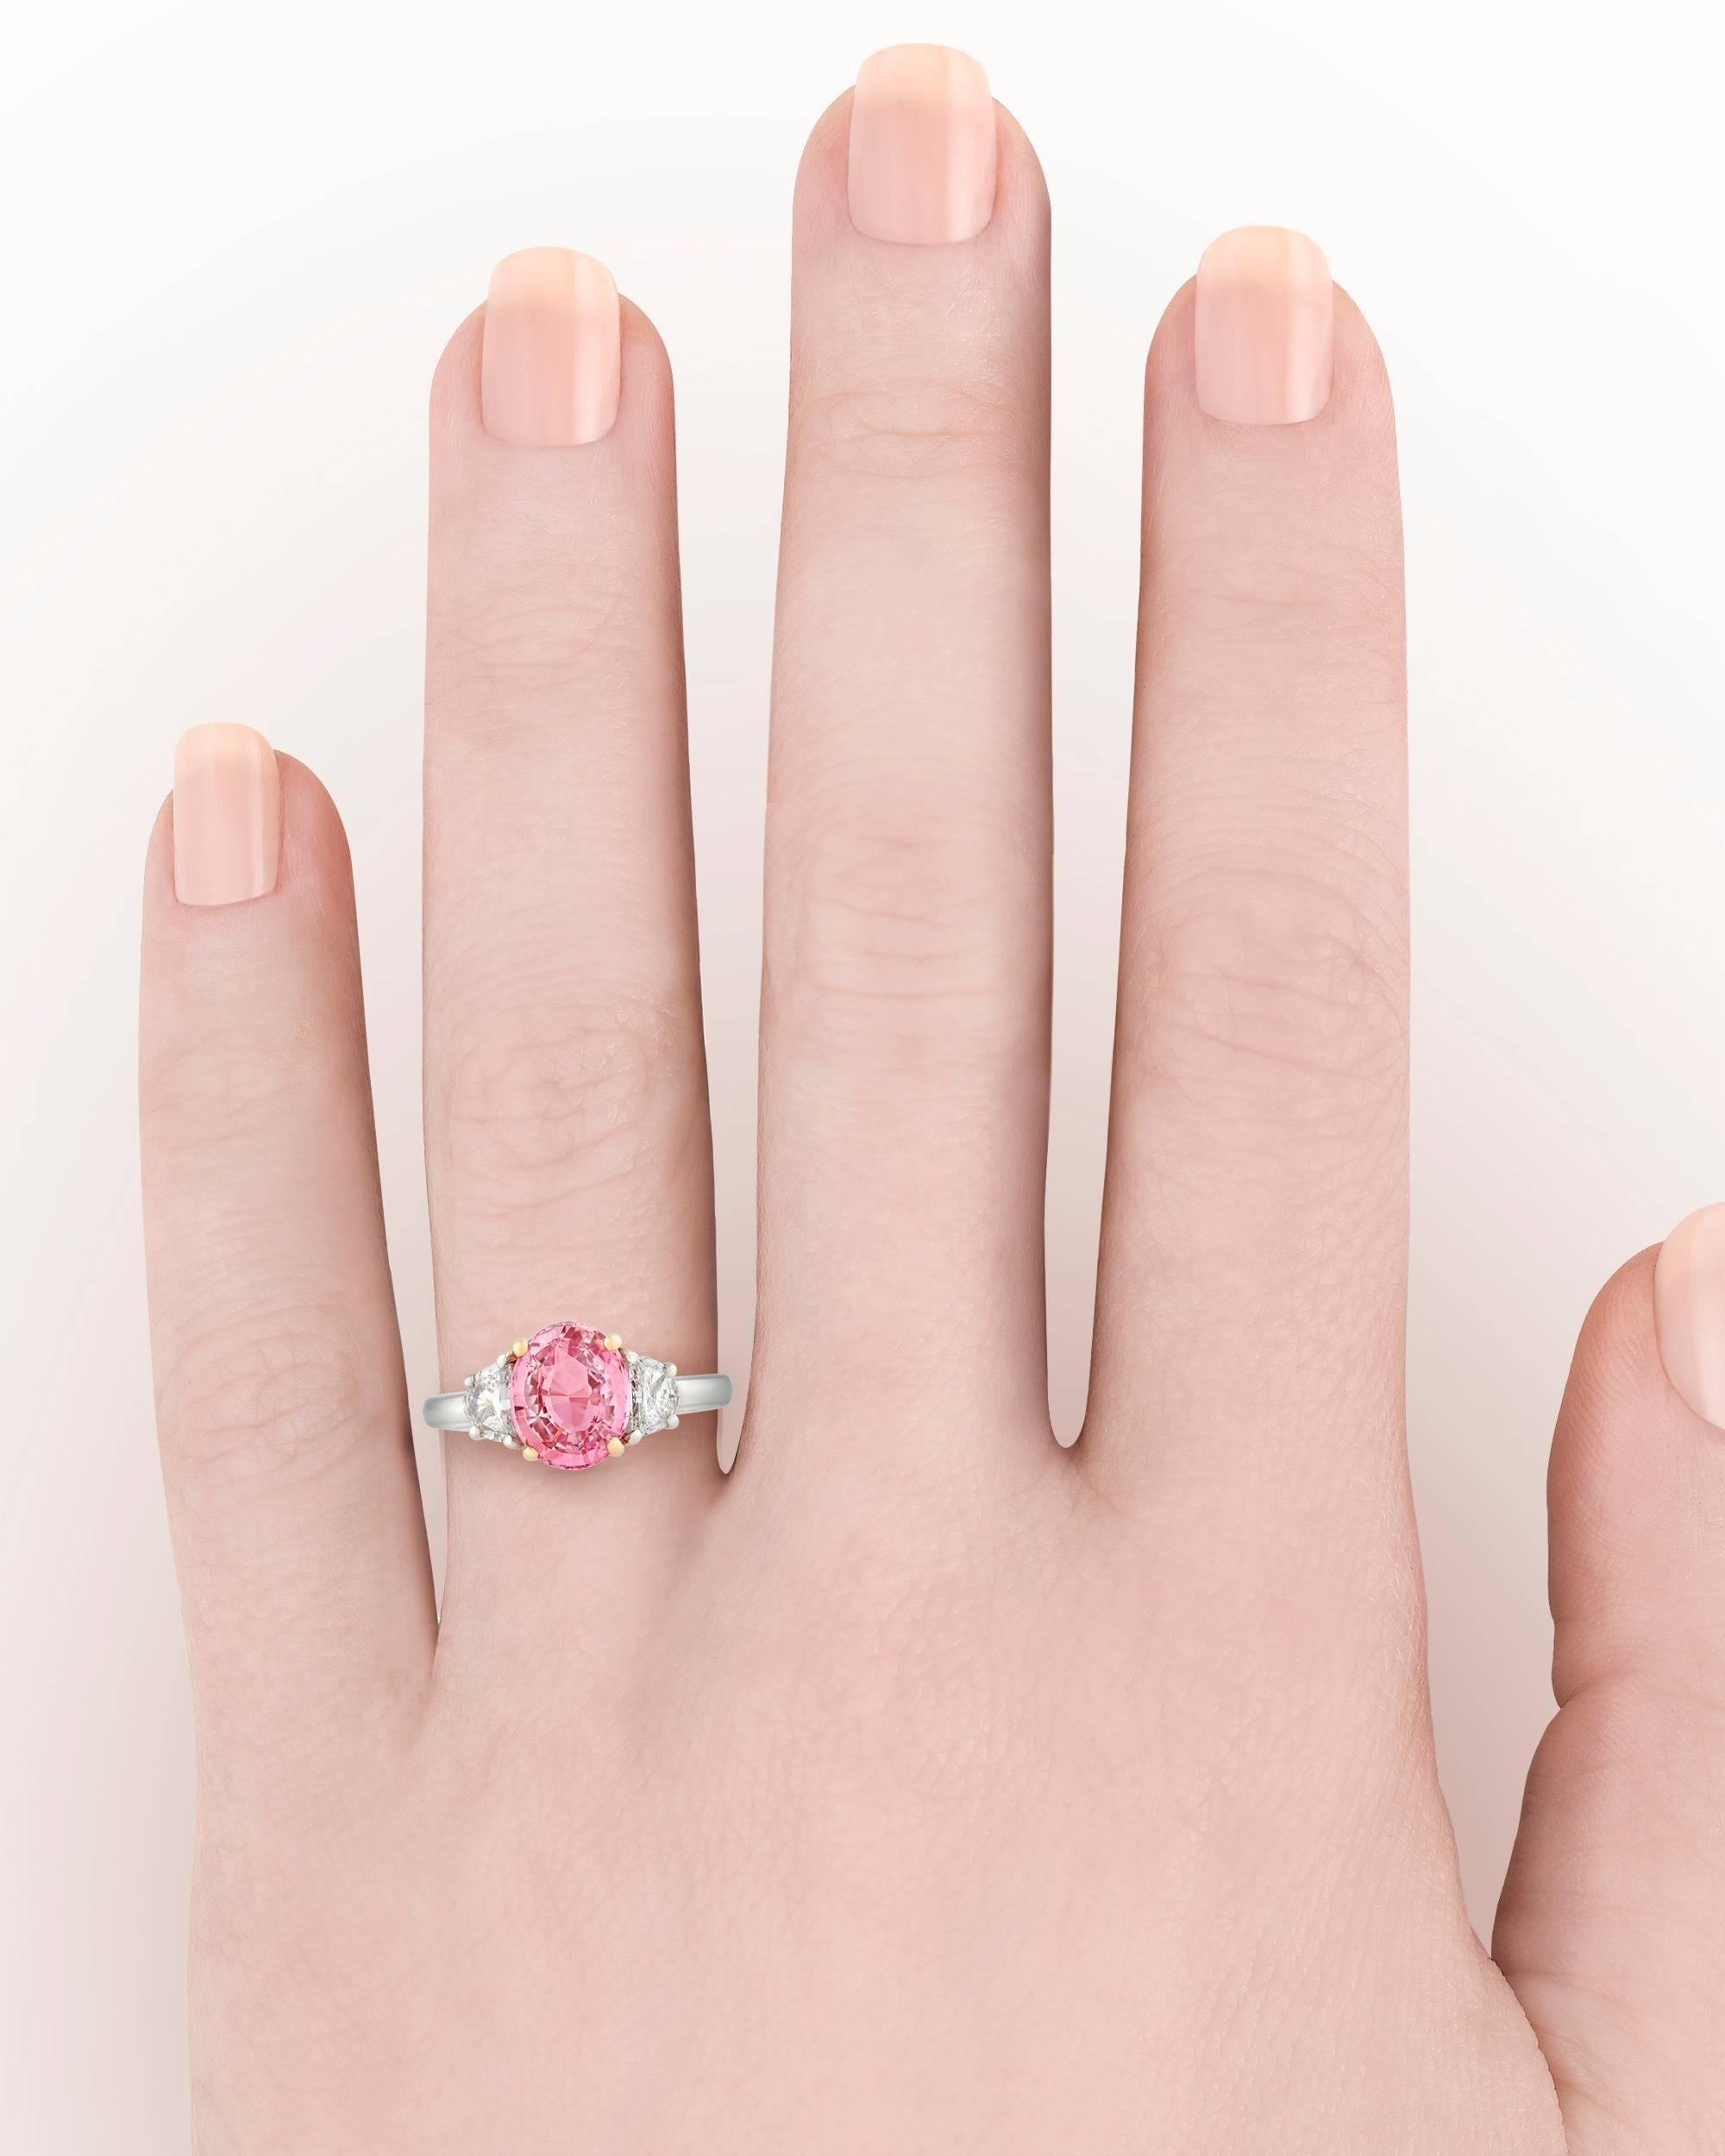 Padparadscha Sapphire Ring, 3.07 Carat For Sale at 1stdibs